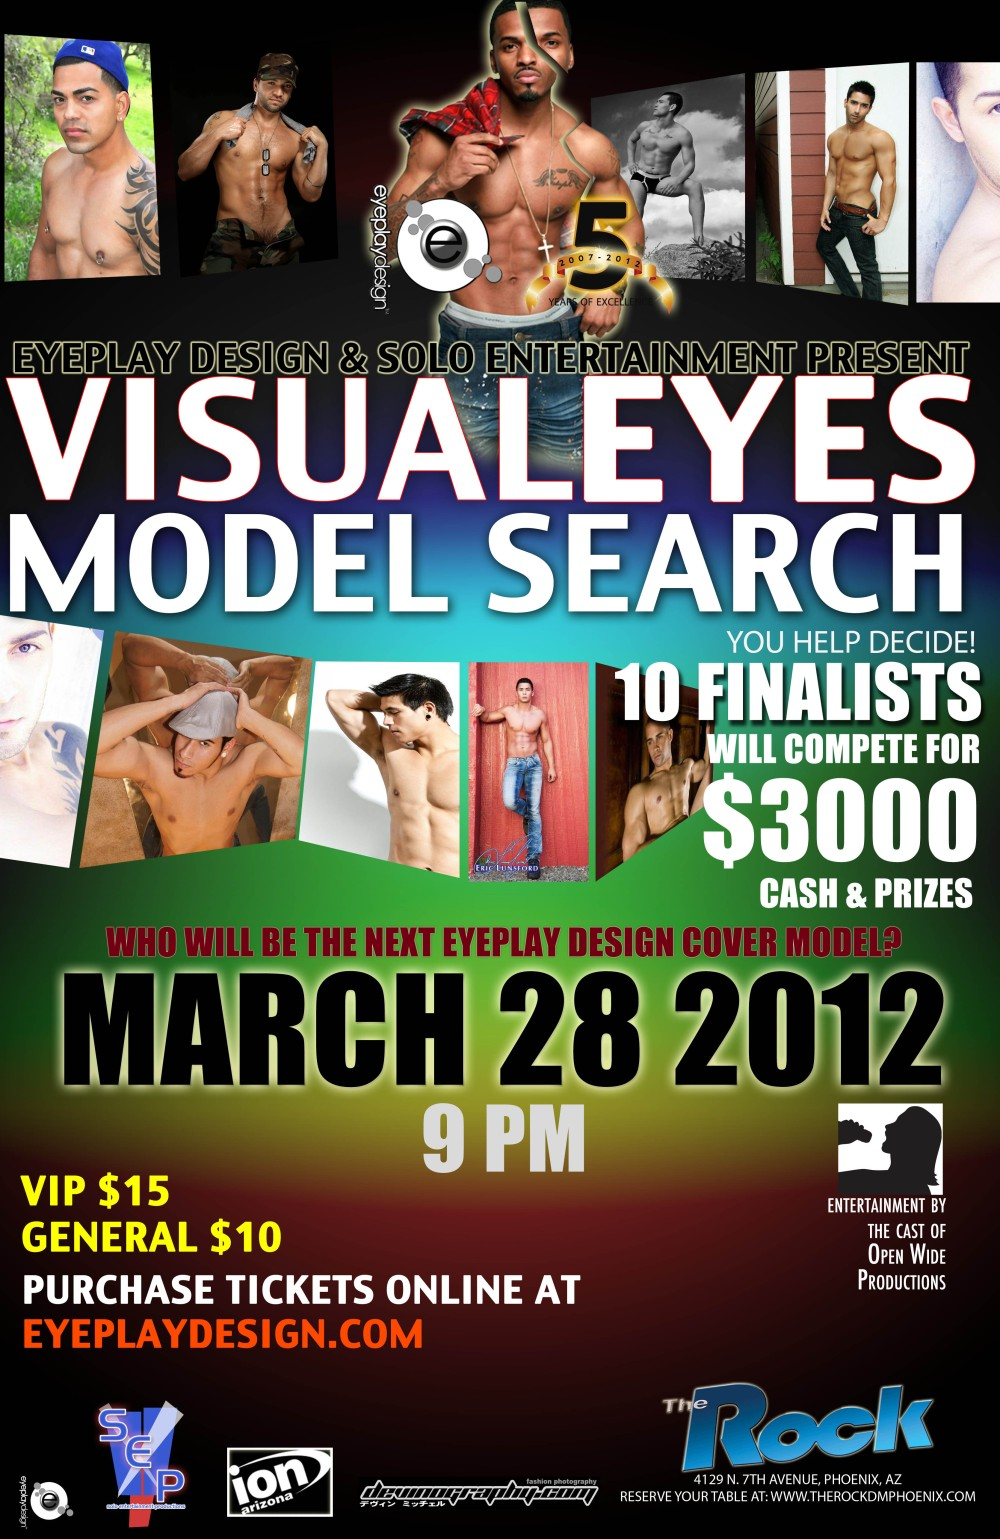 You've voted now you can meet the models and see who is the next cover model for EyePlay Design.   The finale will be hosted at The Rock - Phoenix, AZ on Wednesday, March 28 at 9 p.m.  Make your reservations now at http://www.therockdmphoenix.com/.  Tickets are available for the event at: http://www.brownpapertickets.com/event/233350  For more information, send an email to models@eyeplaydesign.com